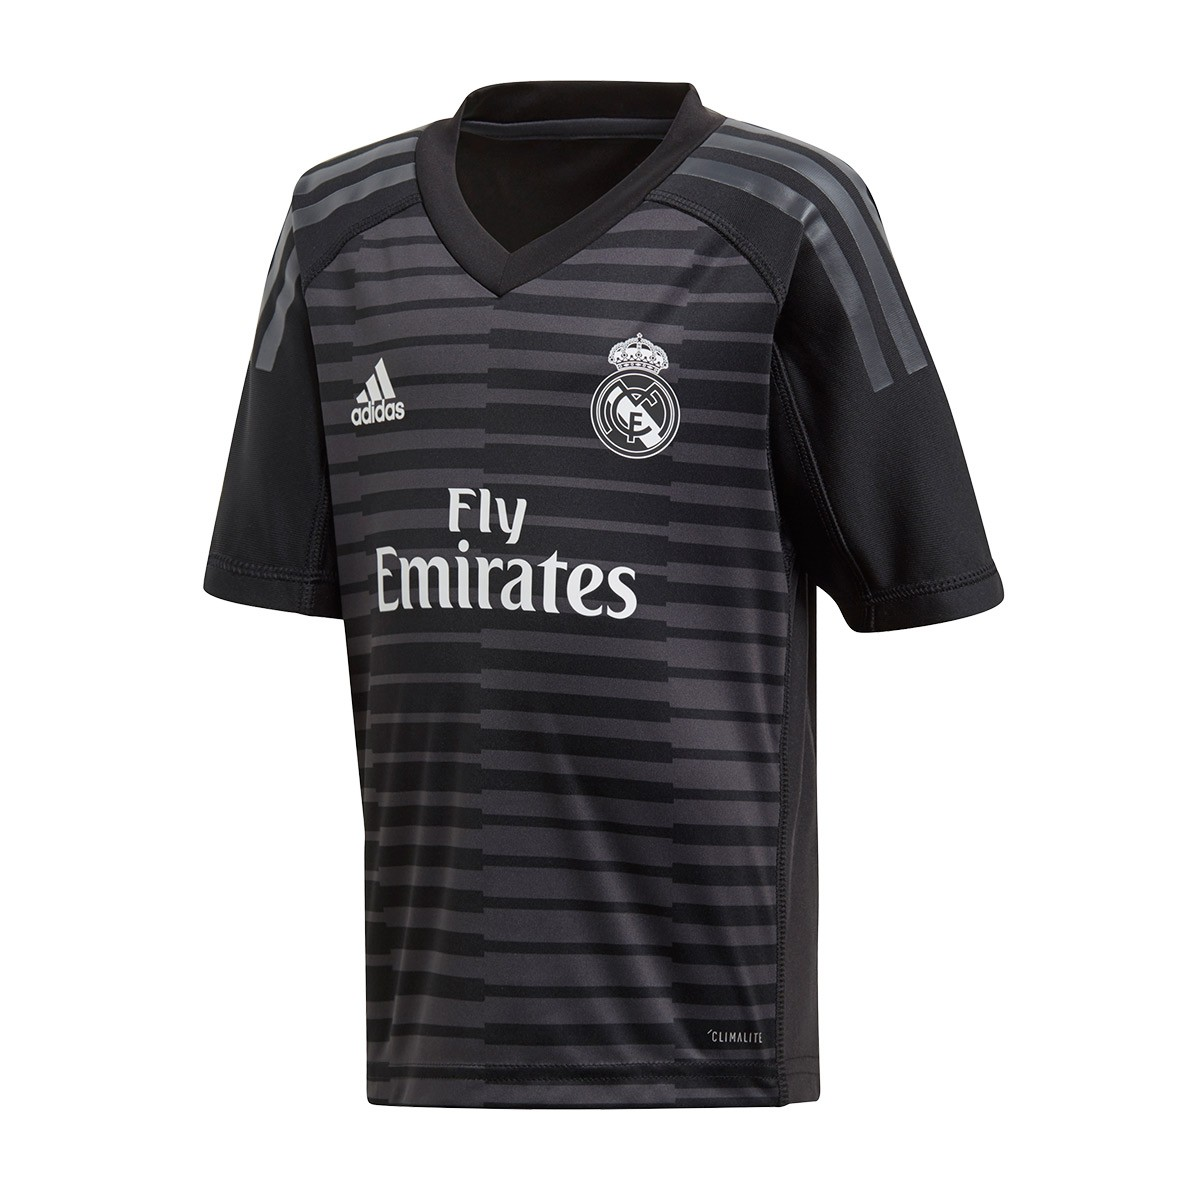 614c01a2647 Kit adidas Kids Goalkeeper Real Madrid 2018-2019 Home Black-Carbon -  Football store Fútbol Emotion